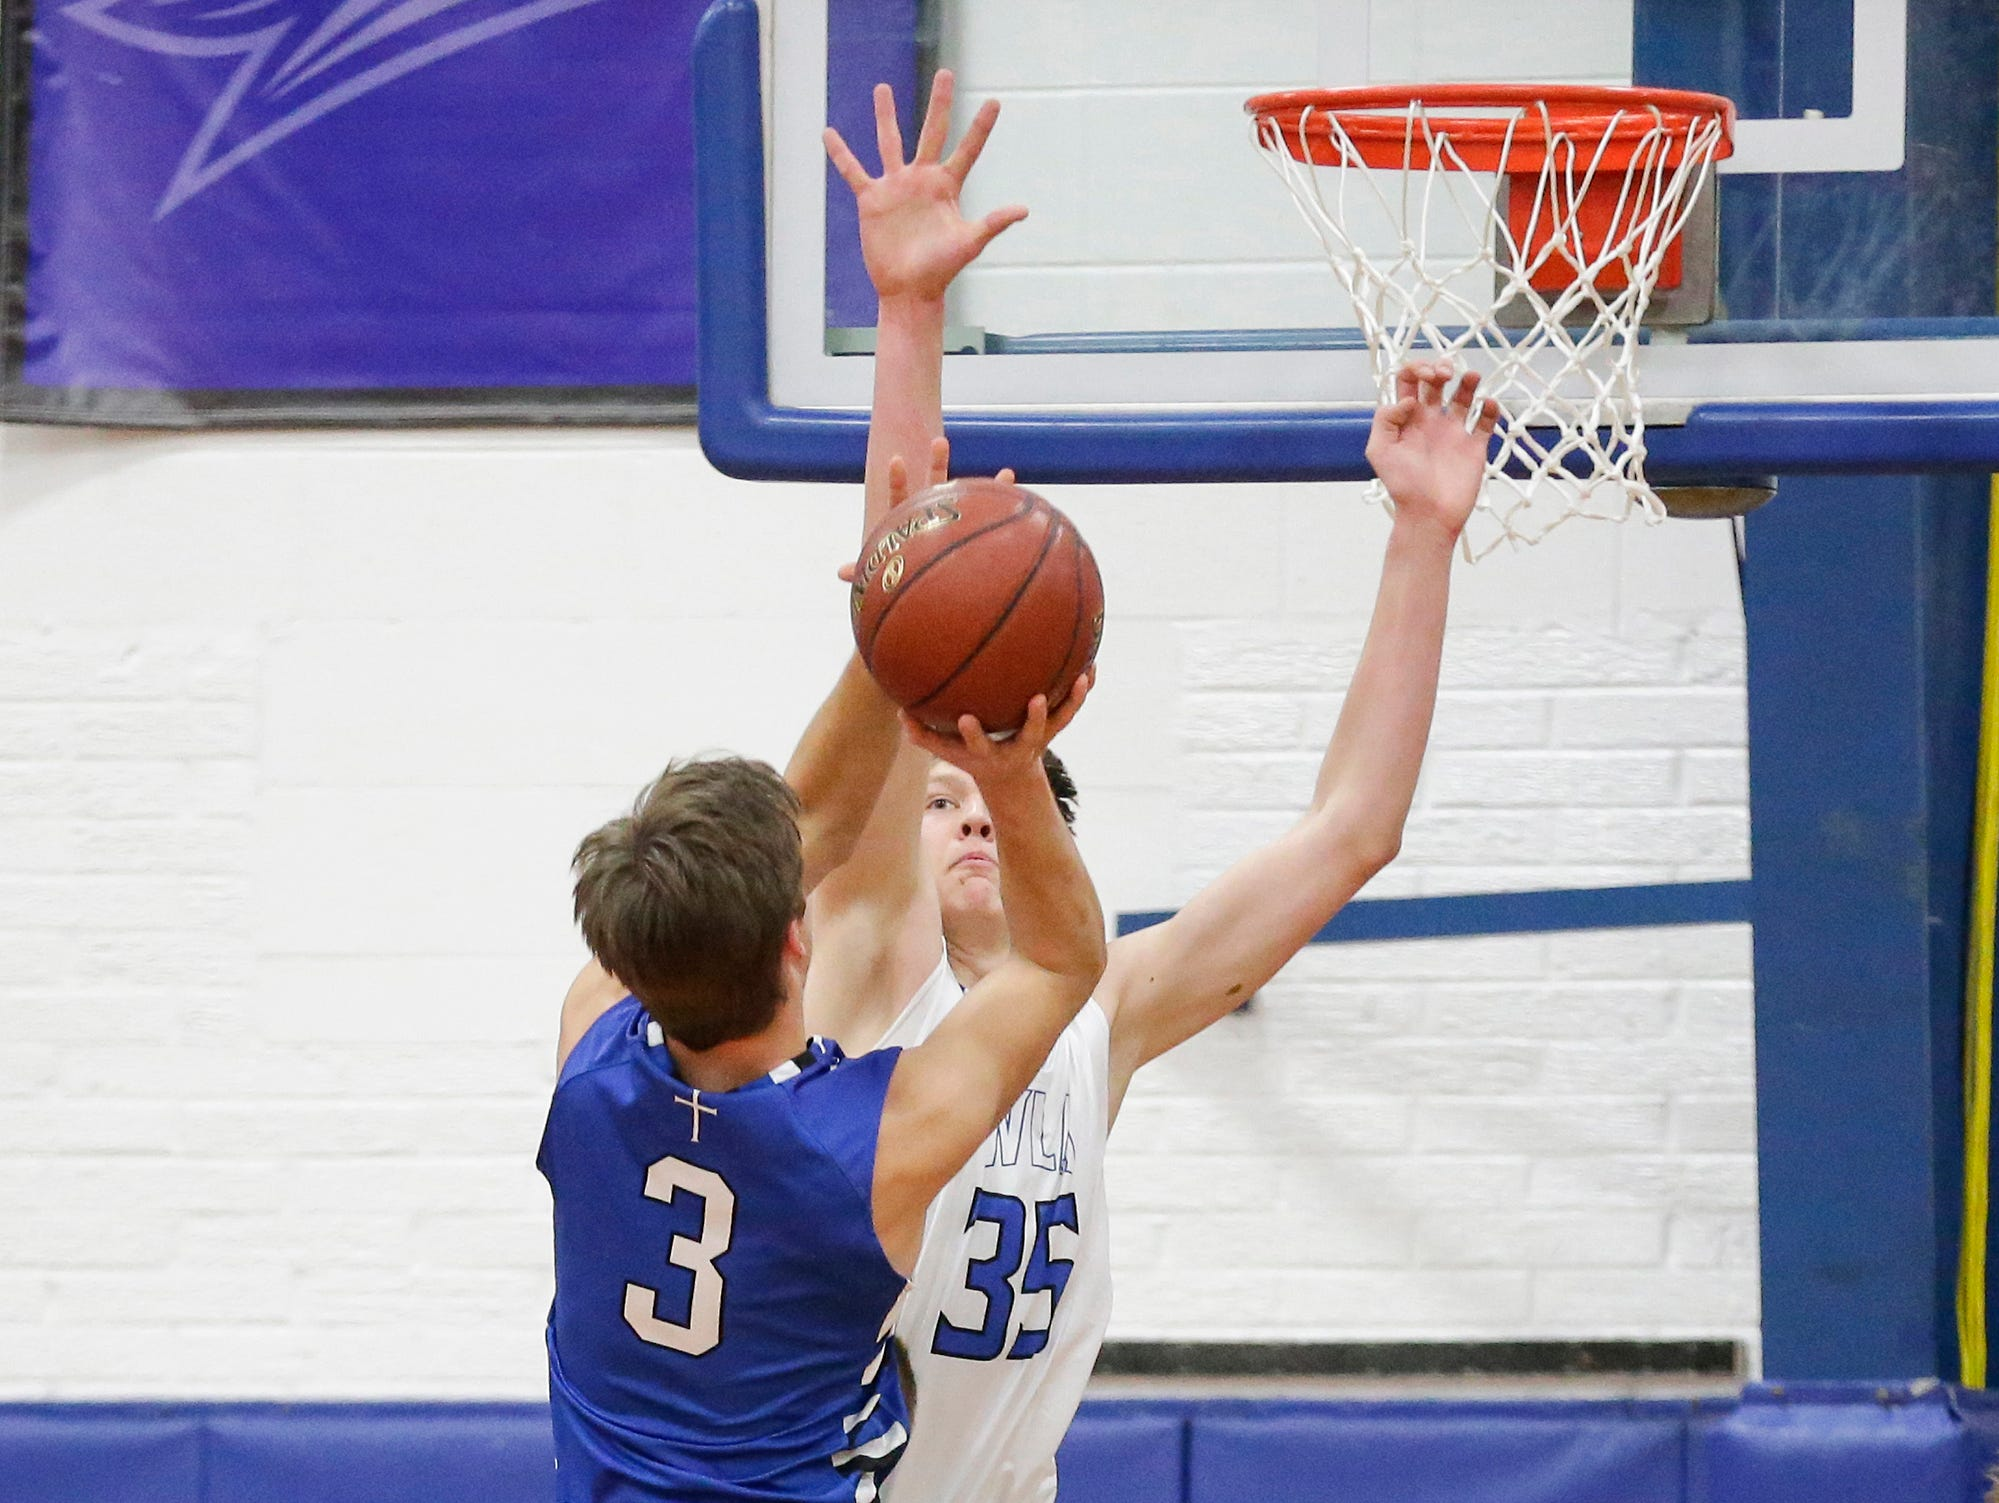 St. Mary's Spring Academy boys basketball's Mitch Waechter attempts a shot against Winnebago Lutheran Academy's Gabe Pruss Tuesday, Jan. 8, 2019, during their game in Fond du Lac. Winnebago Lutheran Academy won the game 69-66.